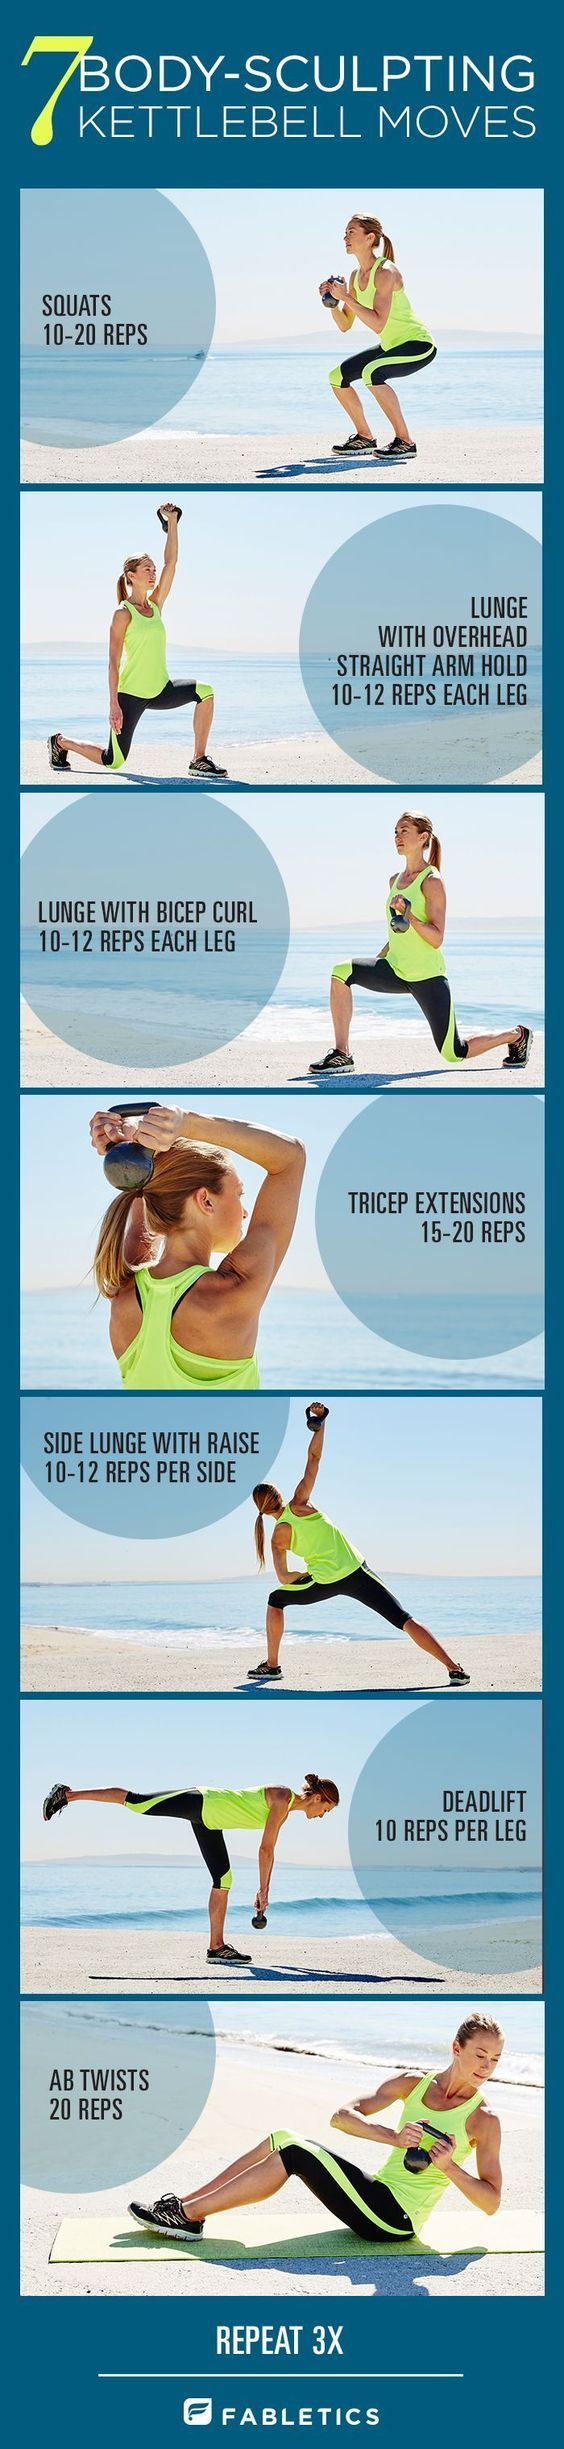 Kettlebell workouts are designed to strengthen and tone your entire body-upper and lower at the same time. When you work on increasing strength and muscle tone, you'll burn more calories at rest. Here are some moves to include in your fitness routine. | Fabletics Blog find more relevant stuff: victoriajohnson.wordpress.com